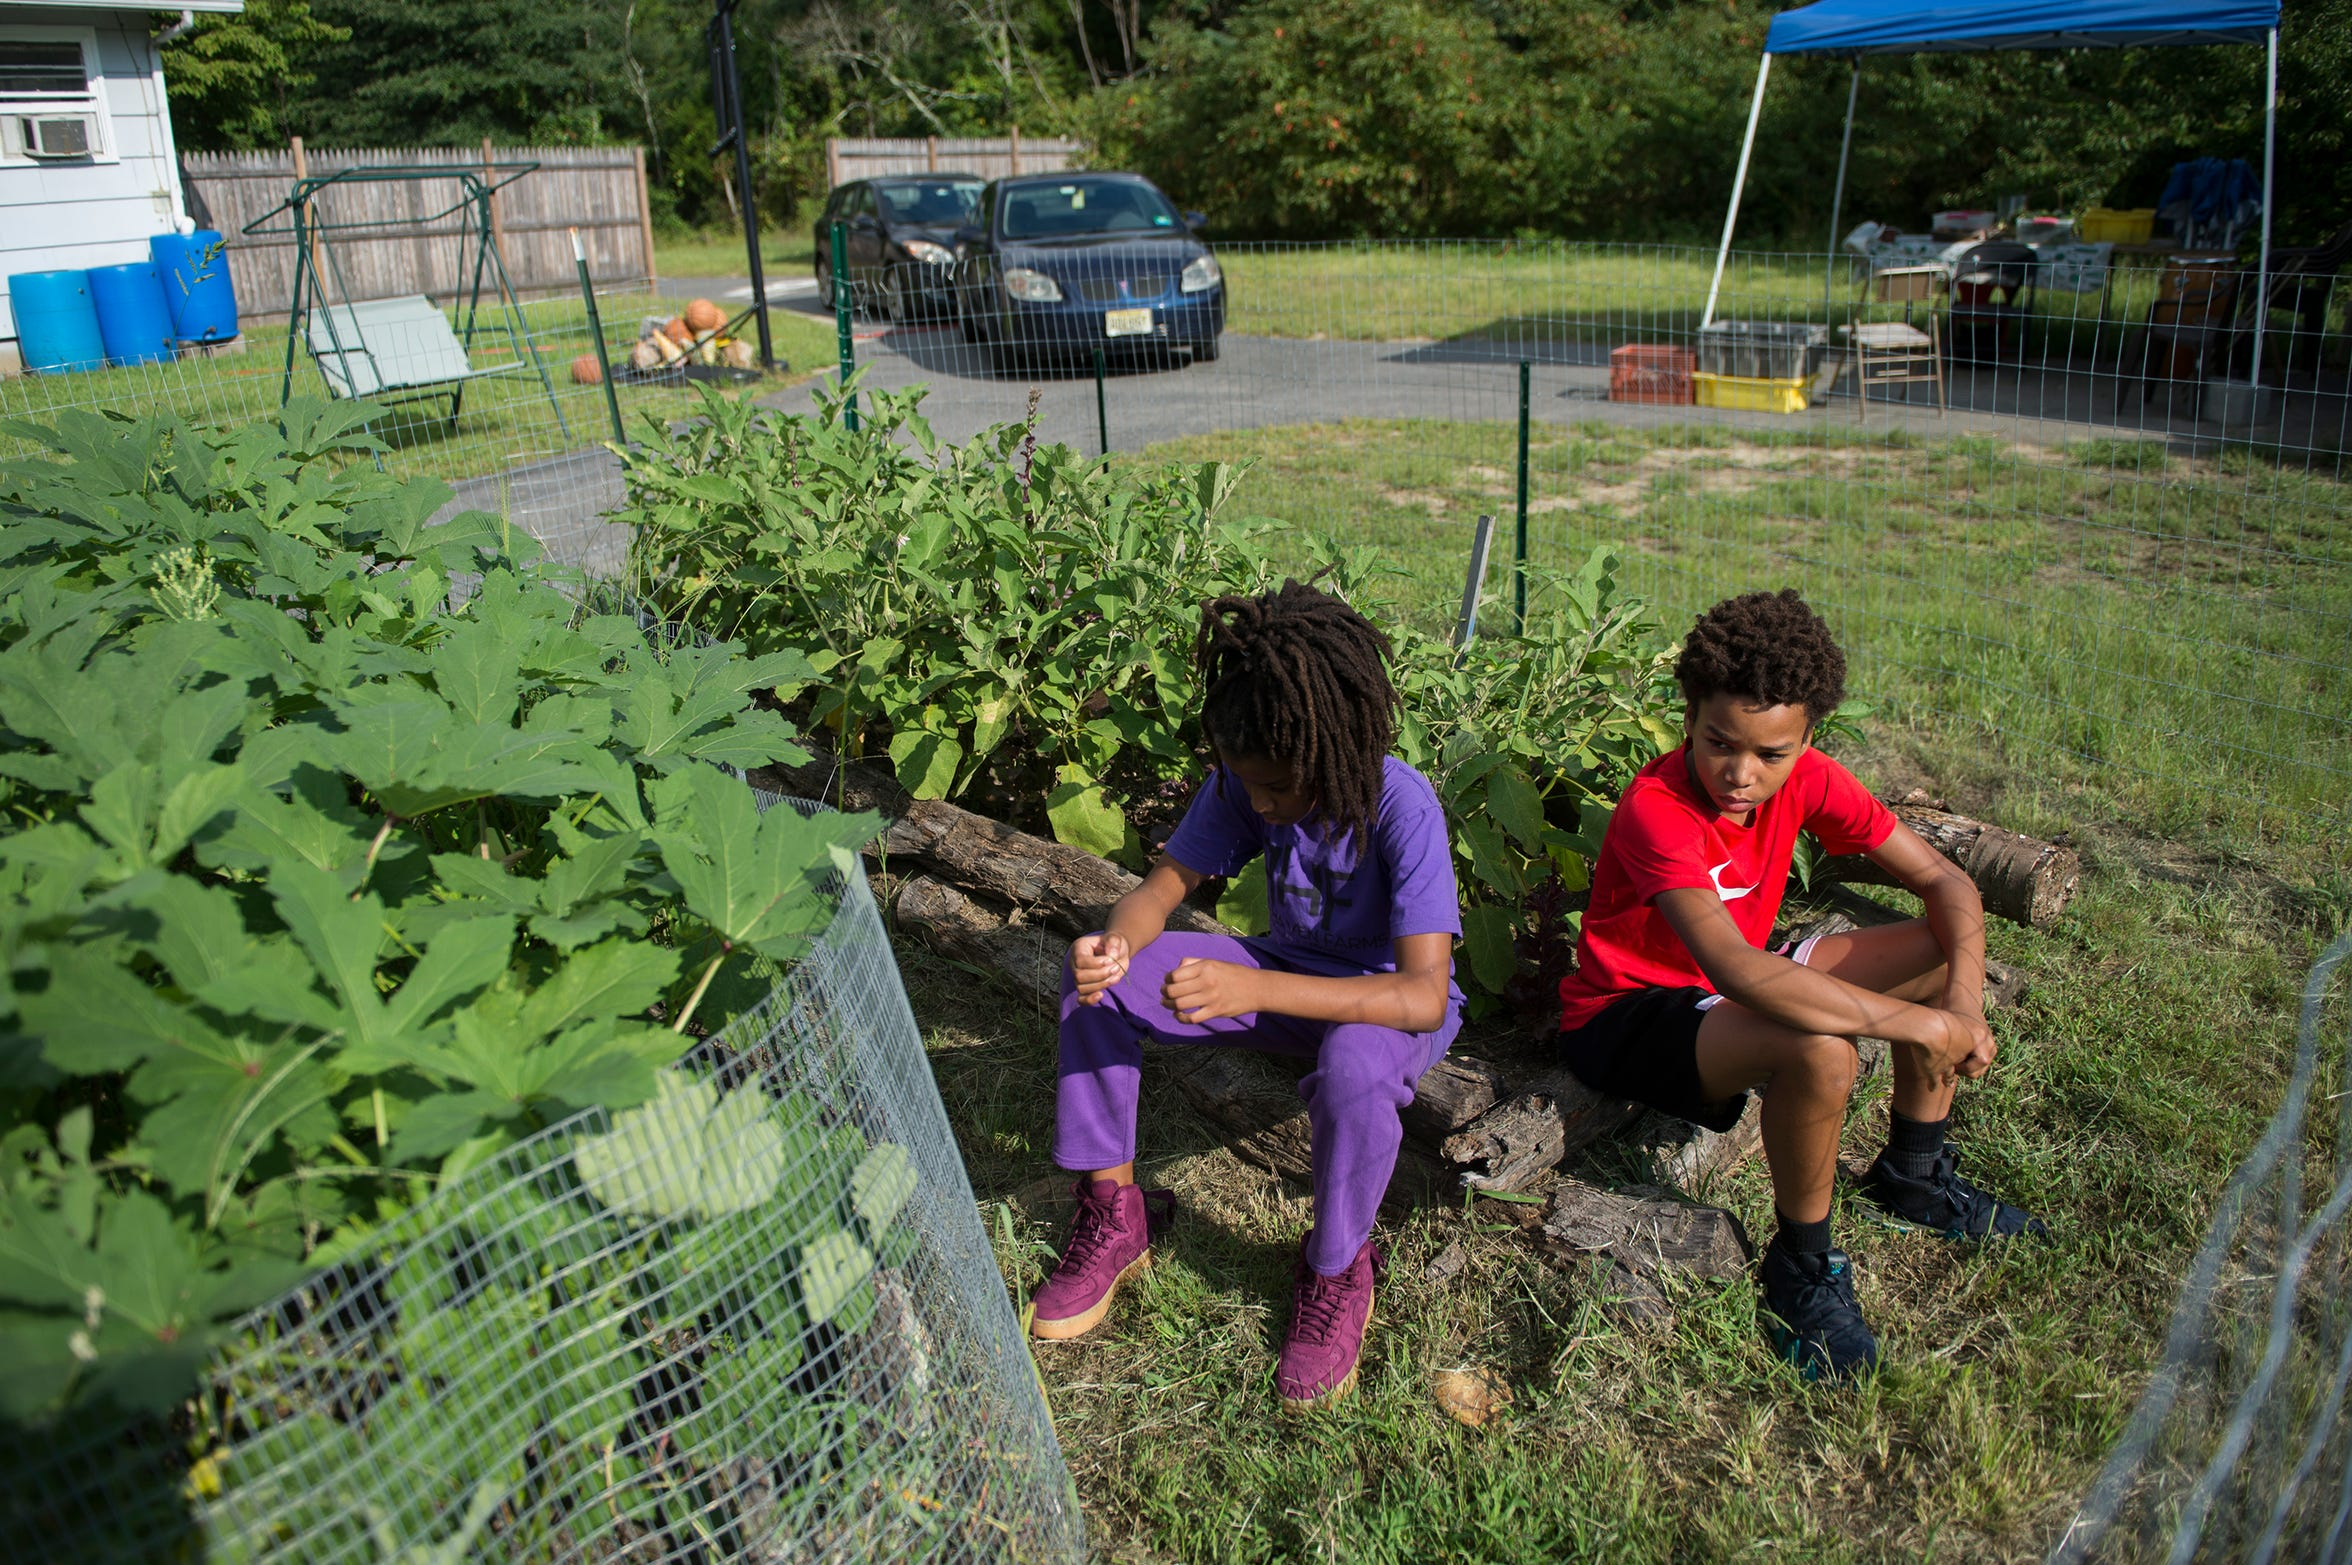 Adia Hall, 10, left, and Sitafa Hall, 12, at their family's farm in Lawnside.